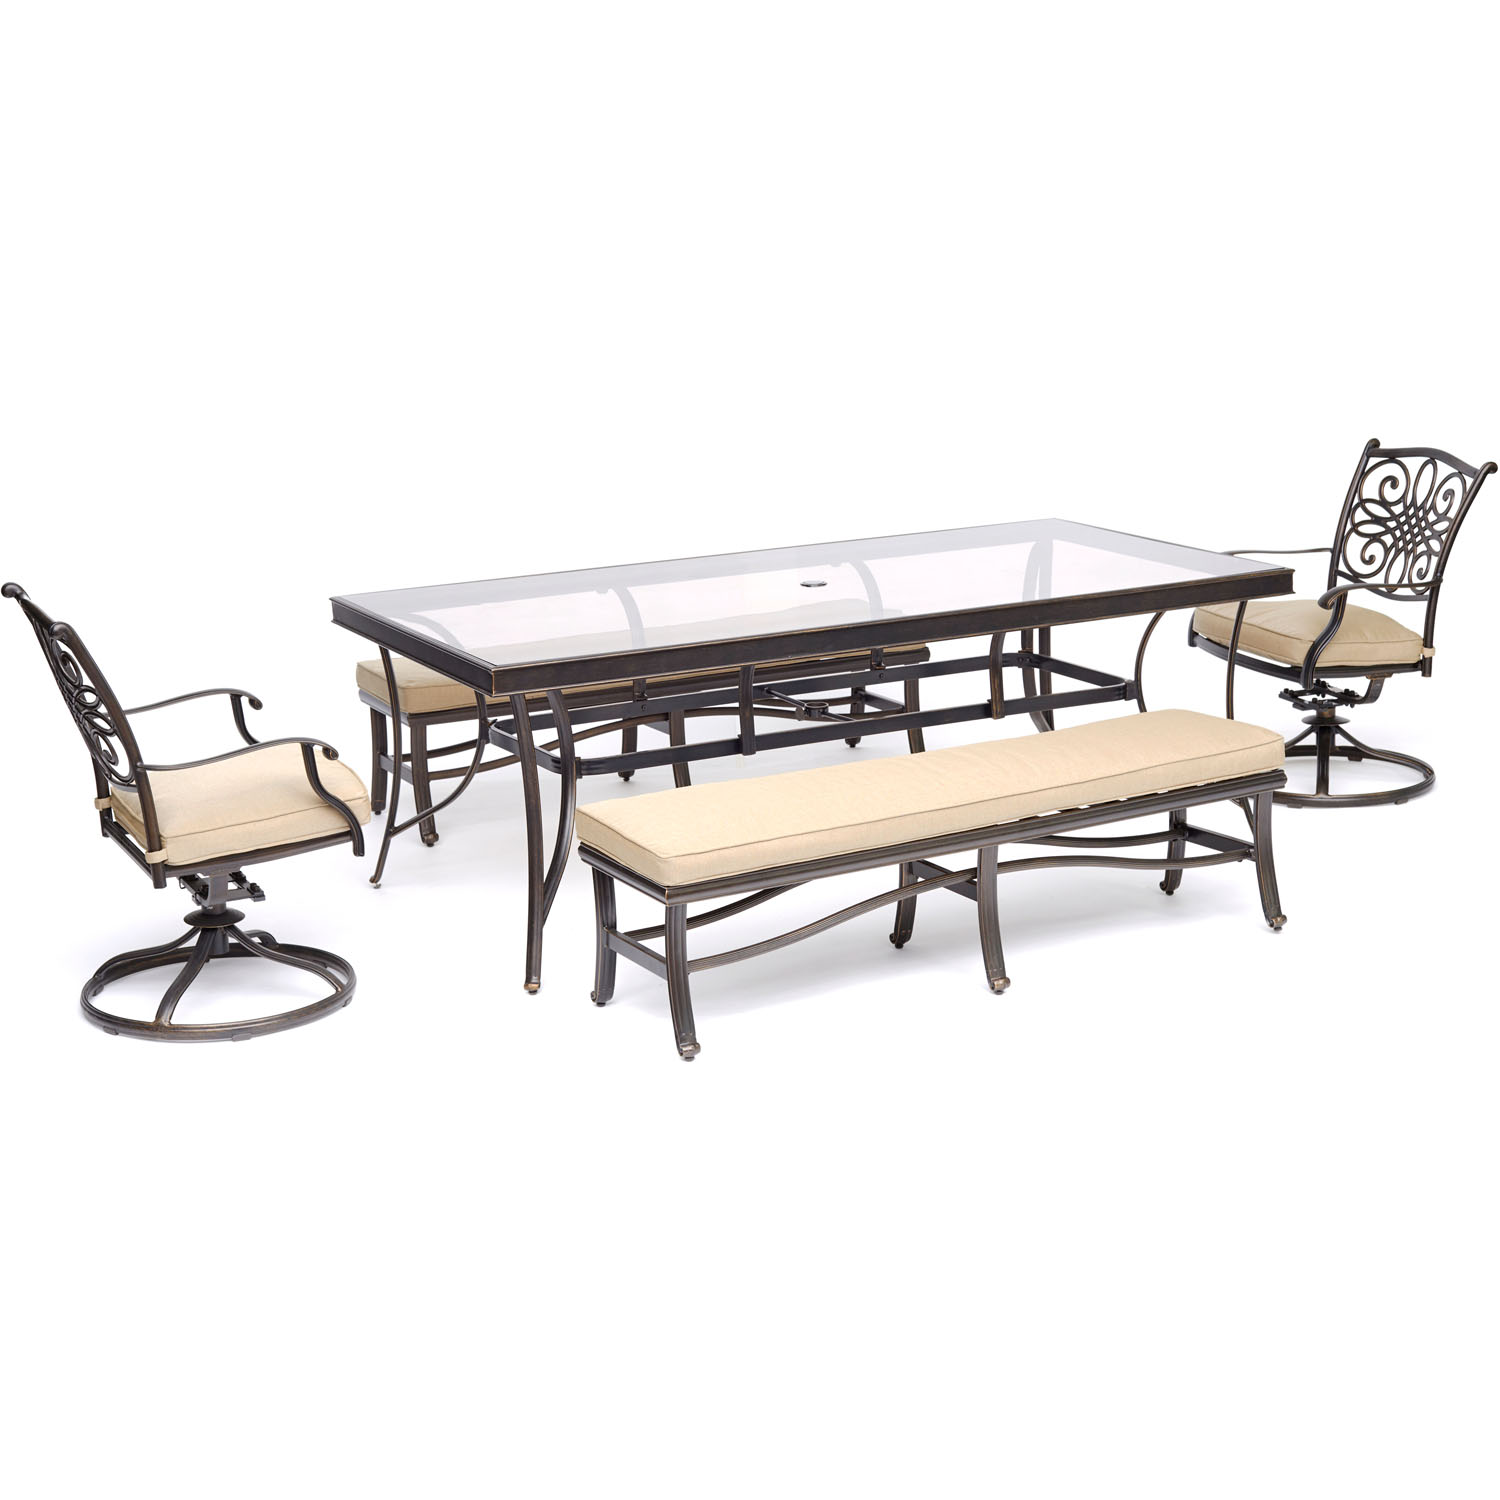 """Hanover Traditions 5-Piece Patio Dining Set in Tan with 2 Swivel Rockers, 2 Cushioned Benches, and a 42"""" x 84"""" Glass-Top Table"""